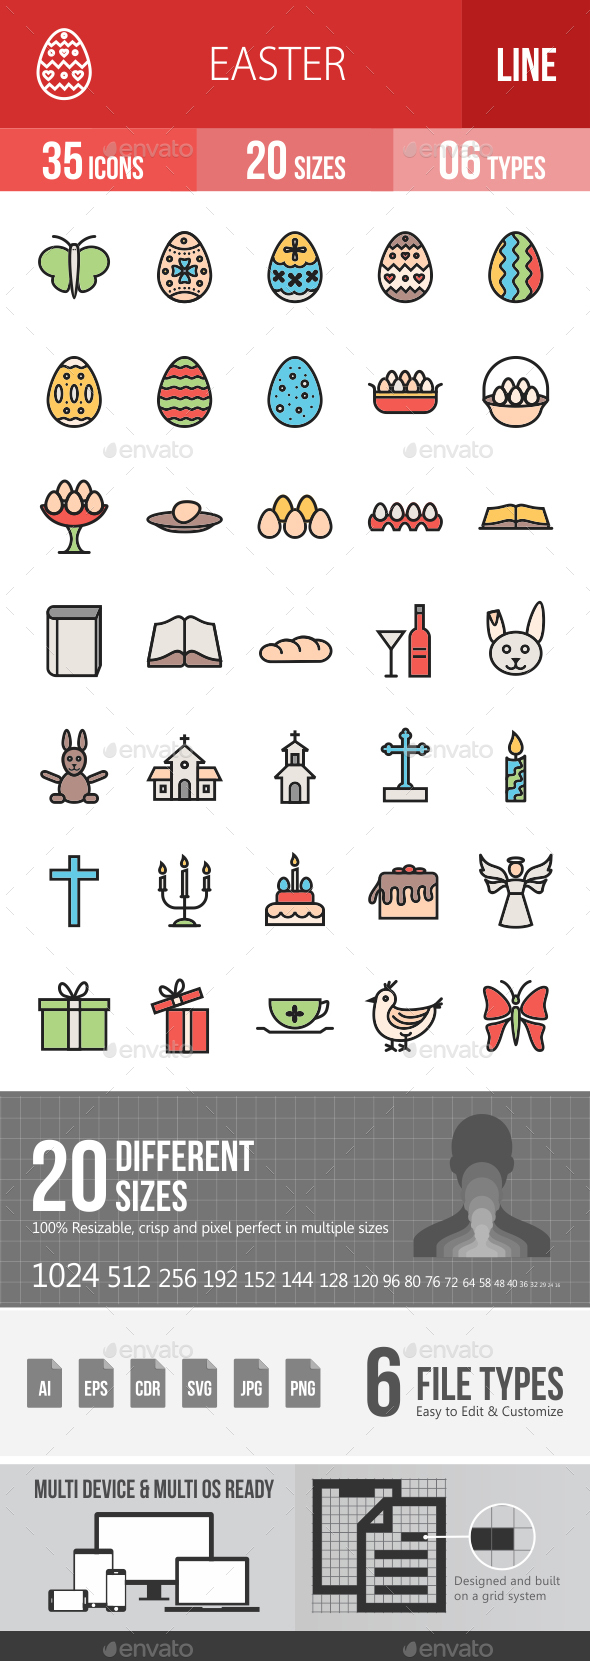 Easter Filled Line Icons - Icons